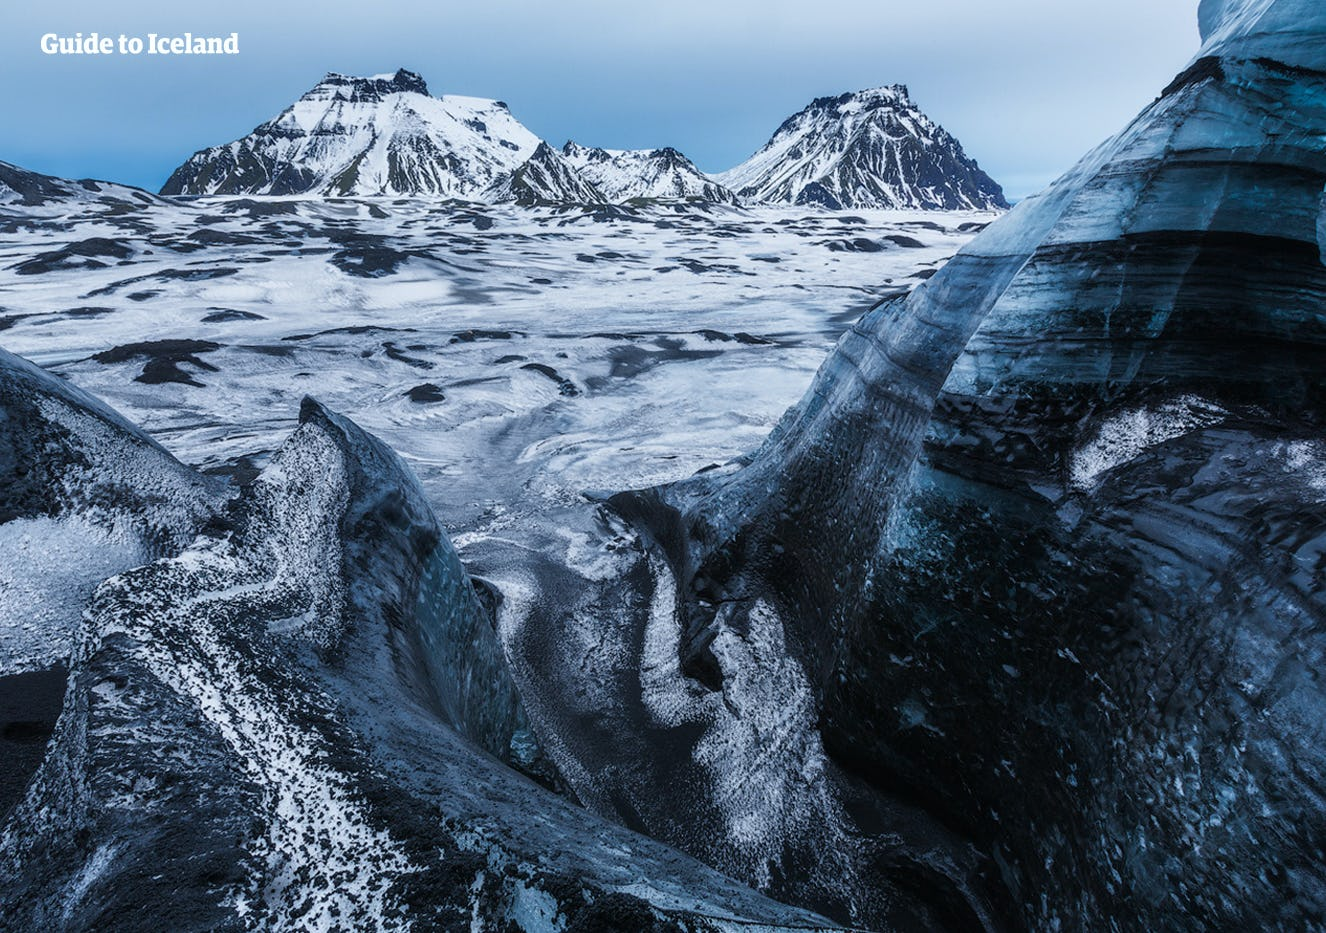 Visit an ice cave inside Mýrdalsjökull glacier with this fantastic tour combo.